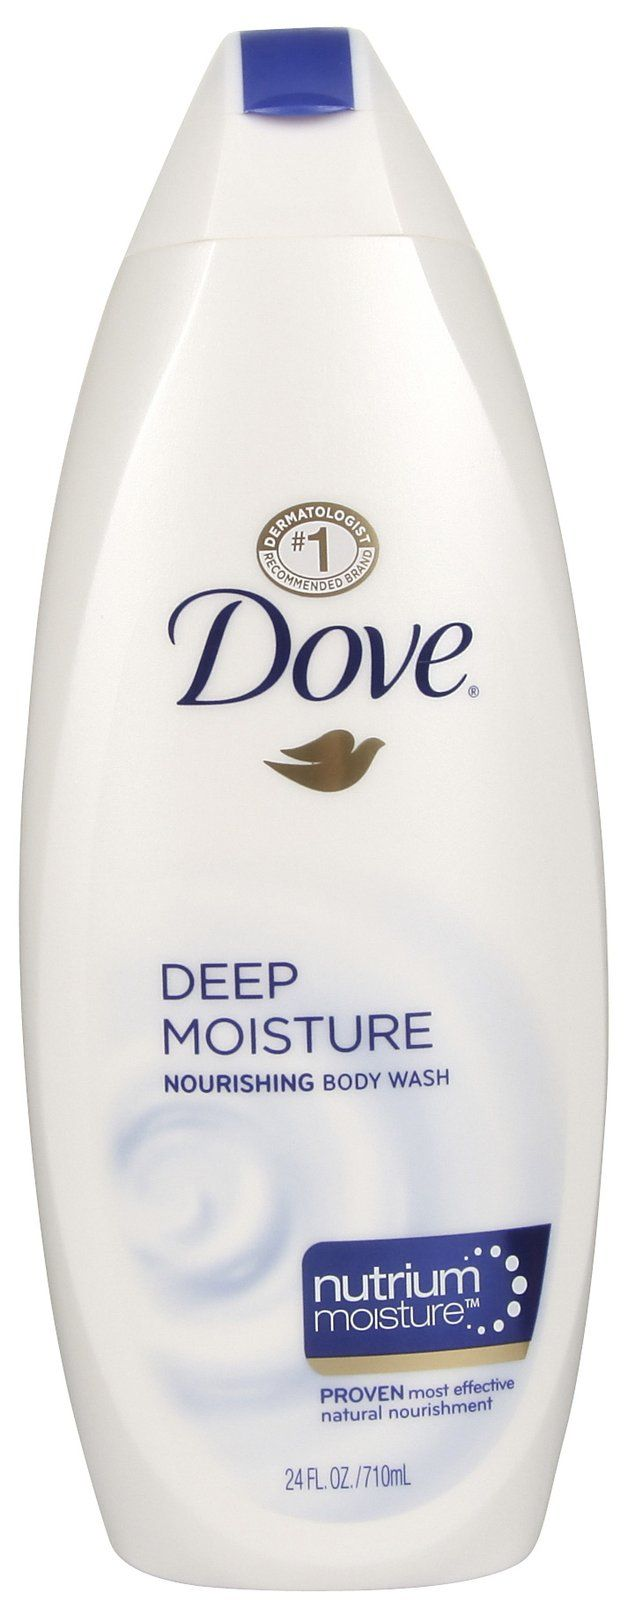 Dove soap slogan - photo#42